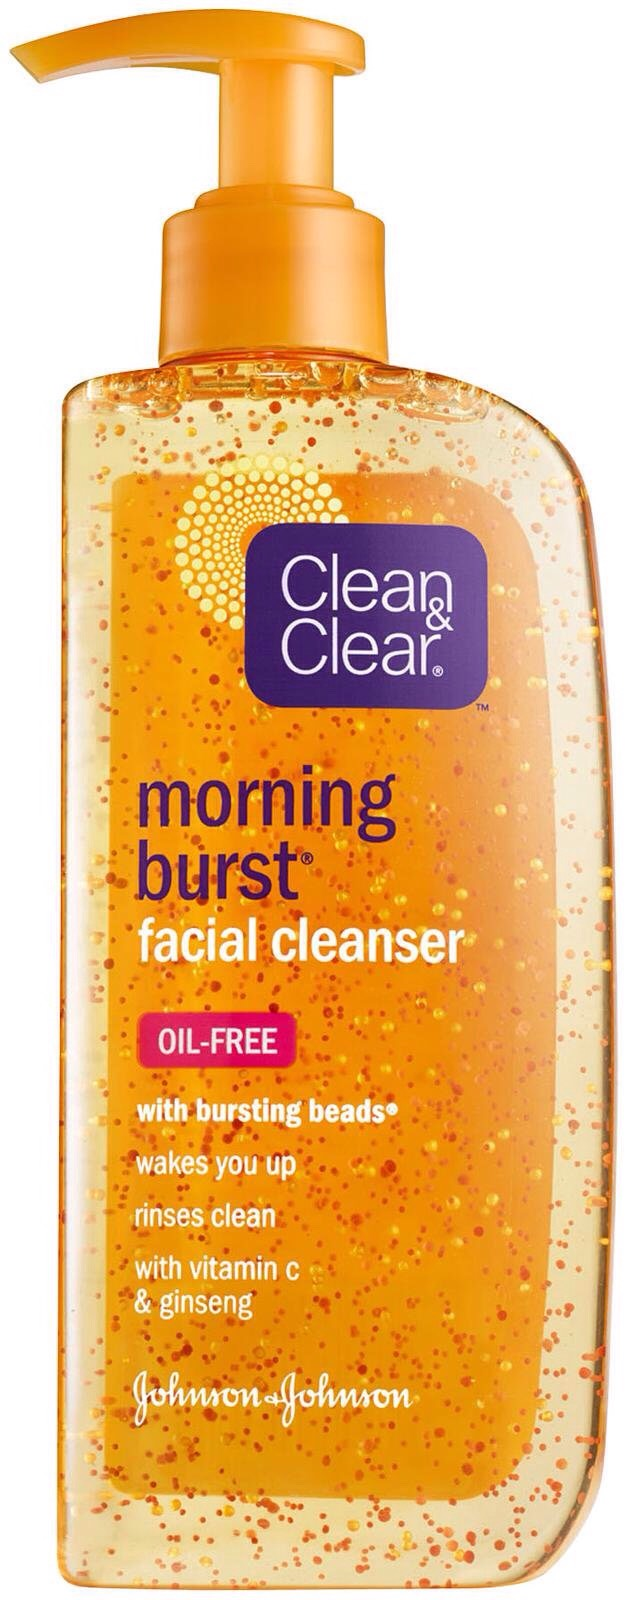 The morning burst is great for a day without makeup. Makes your skin look flawless and glow. Basically it looked like you have on natural makeup but really you have nothing on.